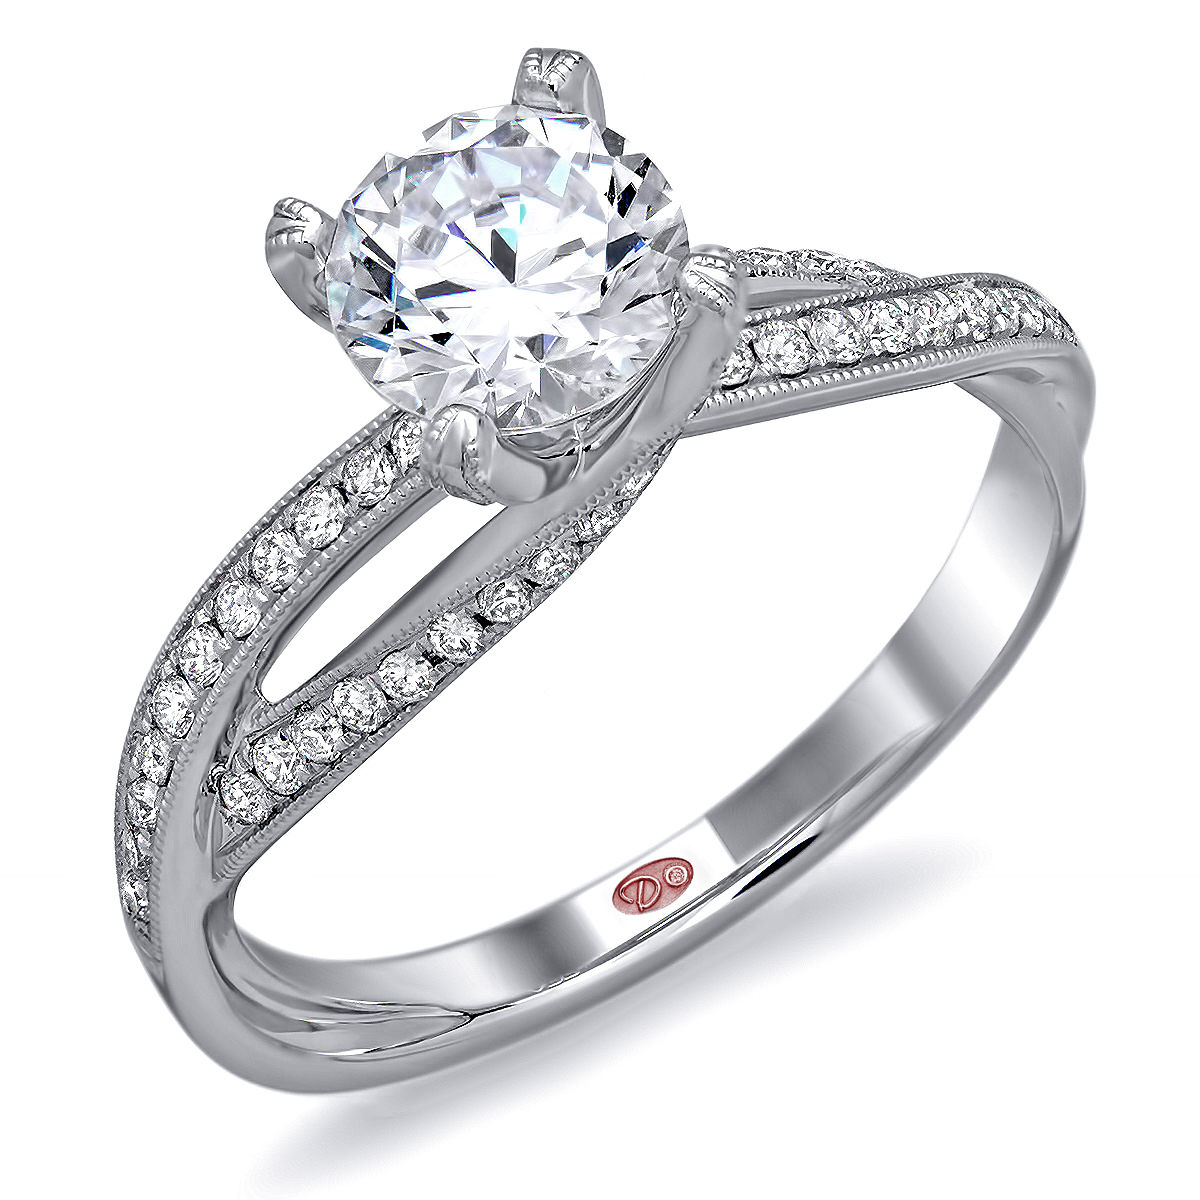 09 unique wedding rings Modern White Gold Engagement Rings